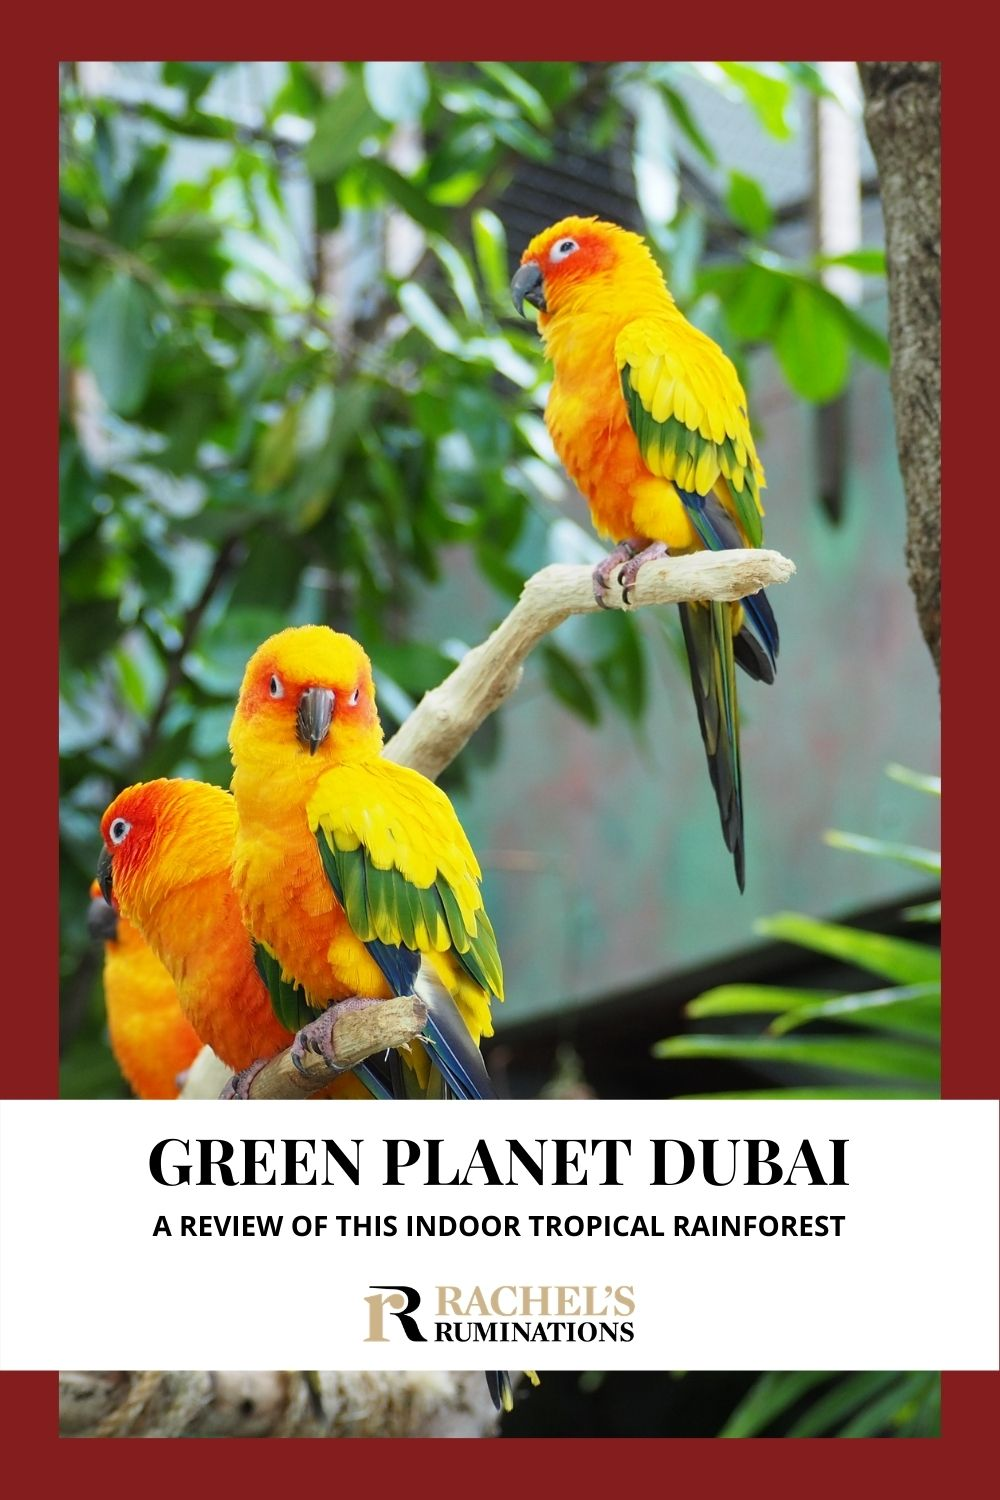 """The Green Planet Dubai is an indoor tropical rainforest, the world's """"largest indoor man-made and life-sustaining tree,"""" with over 3000 species inside. via @rachelsruminations"""